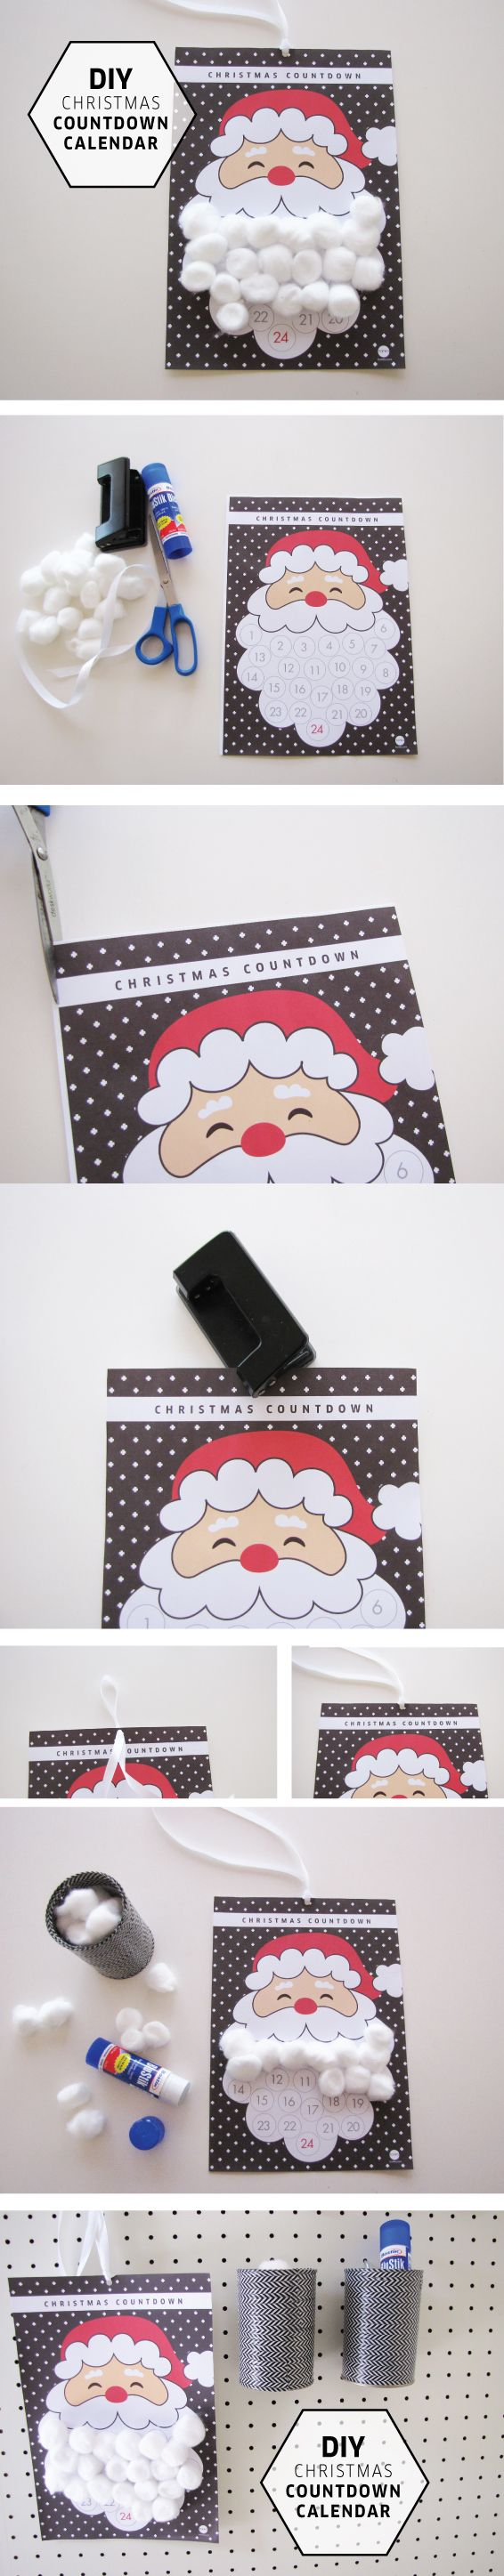 Free Santa's Beard Christmas Calendar Printable on TOMFO. Add a cotton wool ball to make santa's beard, once the beard is made Santa will be arriving the next morning. Super quick to do with a free printable, also a blue version of the same on this blog! A great advent calendar that's fun and doesn't involve chocolate! love!